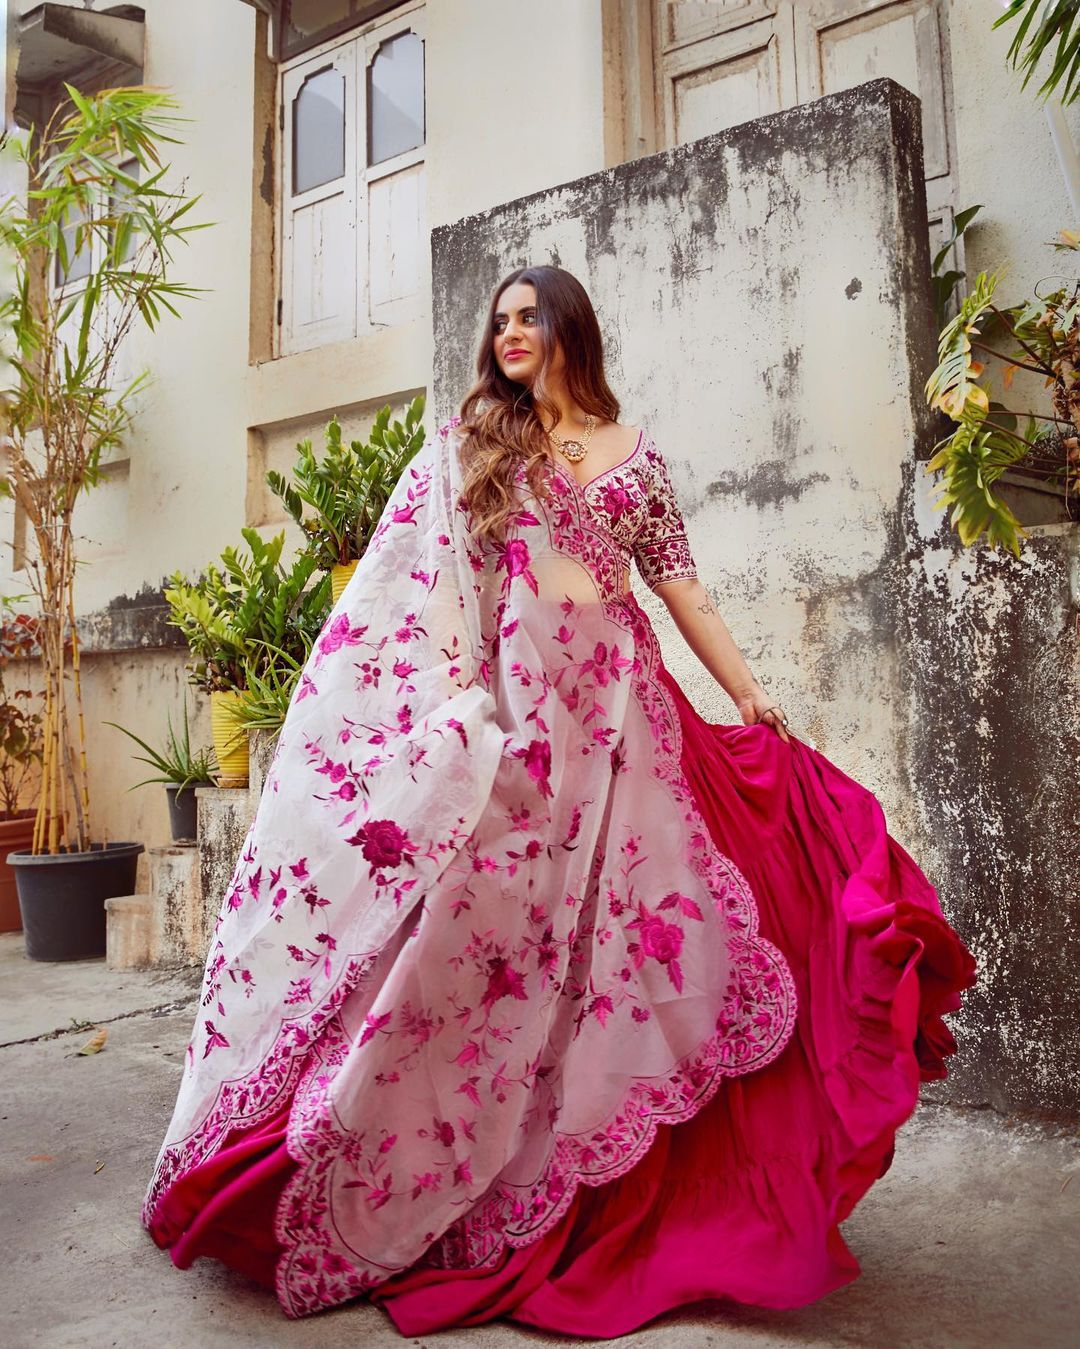 Shereen Sikka looks stunning in this Pink lehenga with Roses embroidered scalloped dupatta.